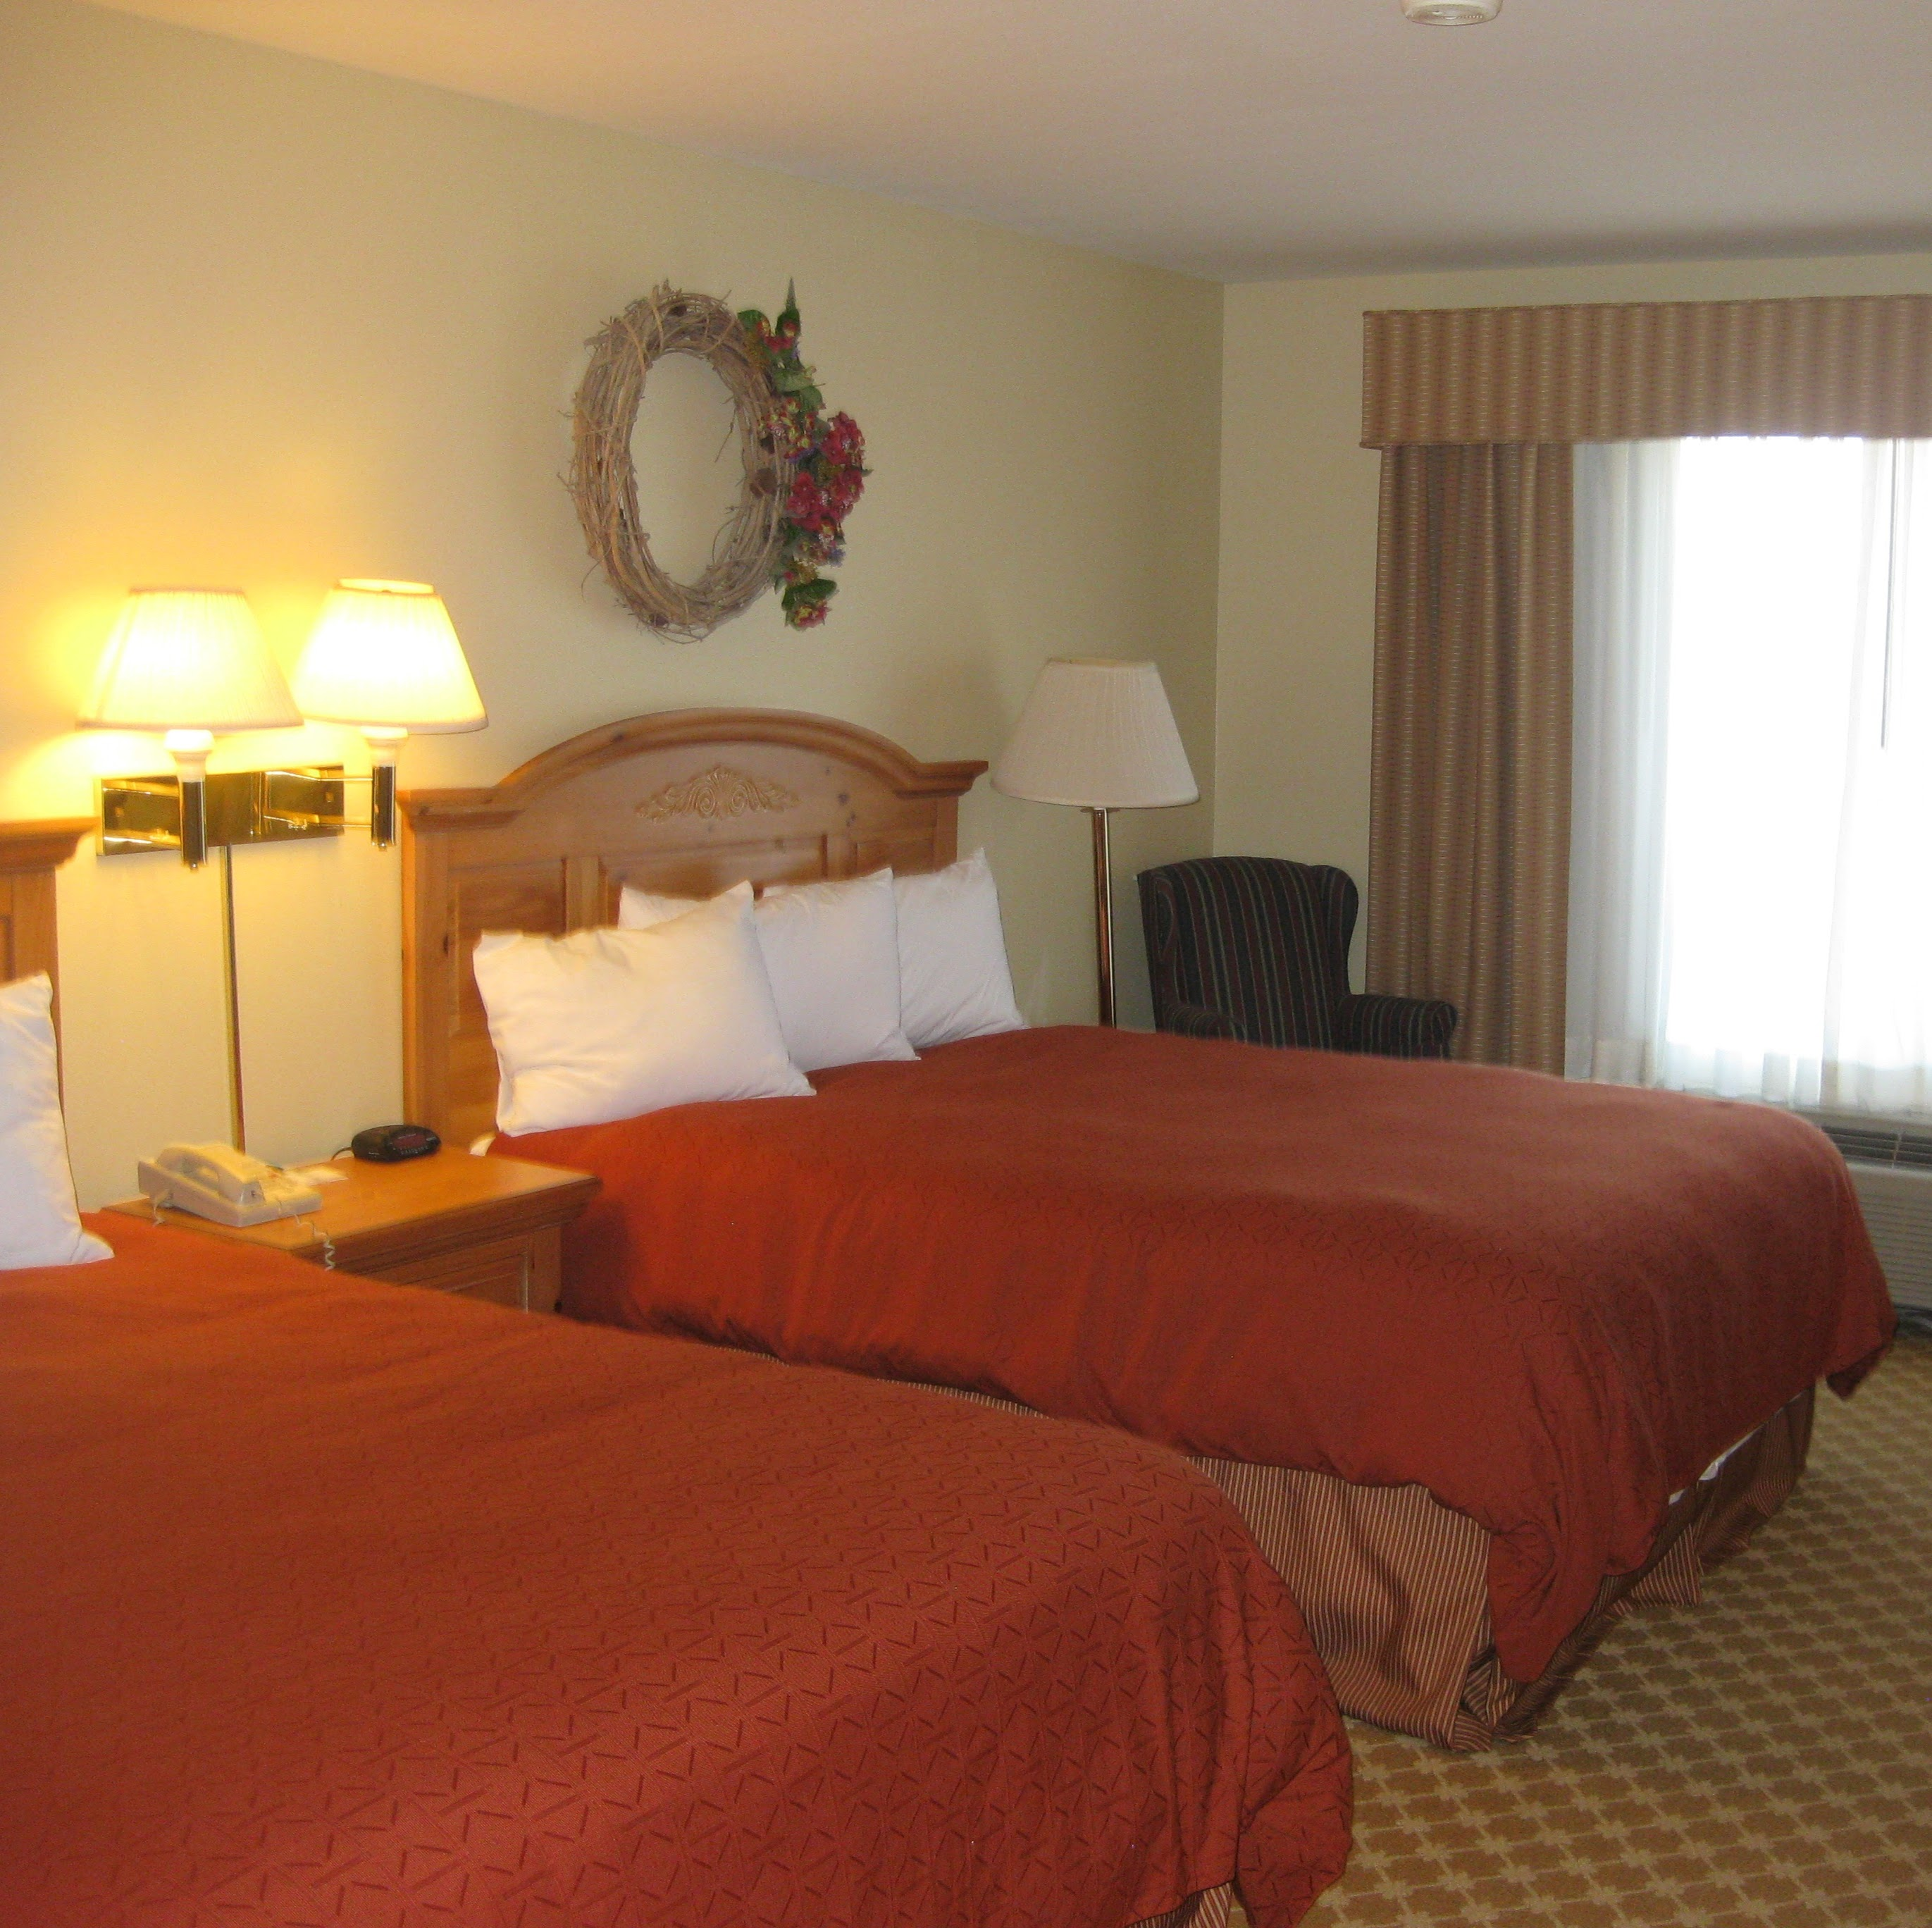 Country Inn & Suites by Radisson, Clinton, IA image 1